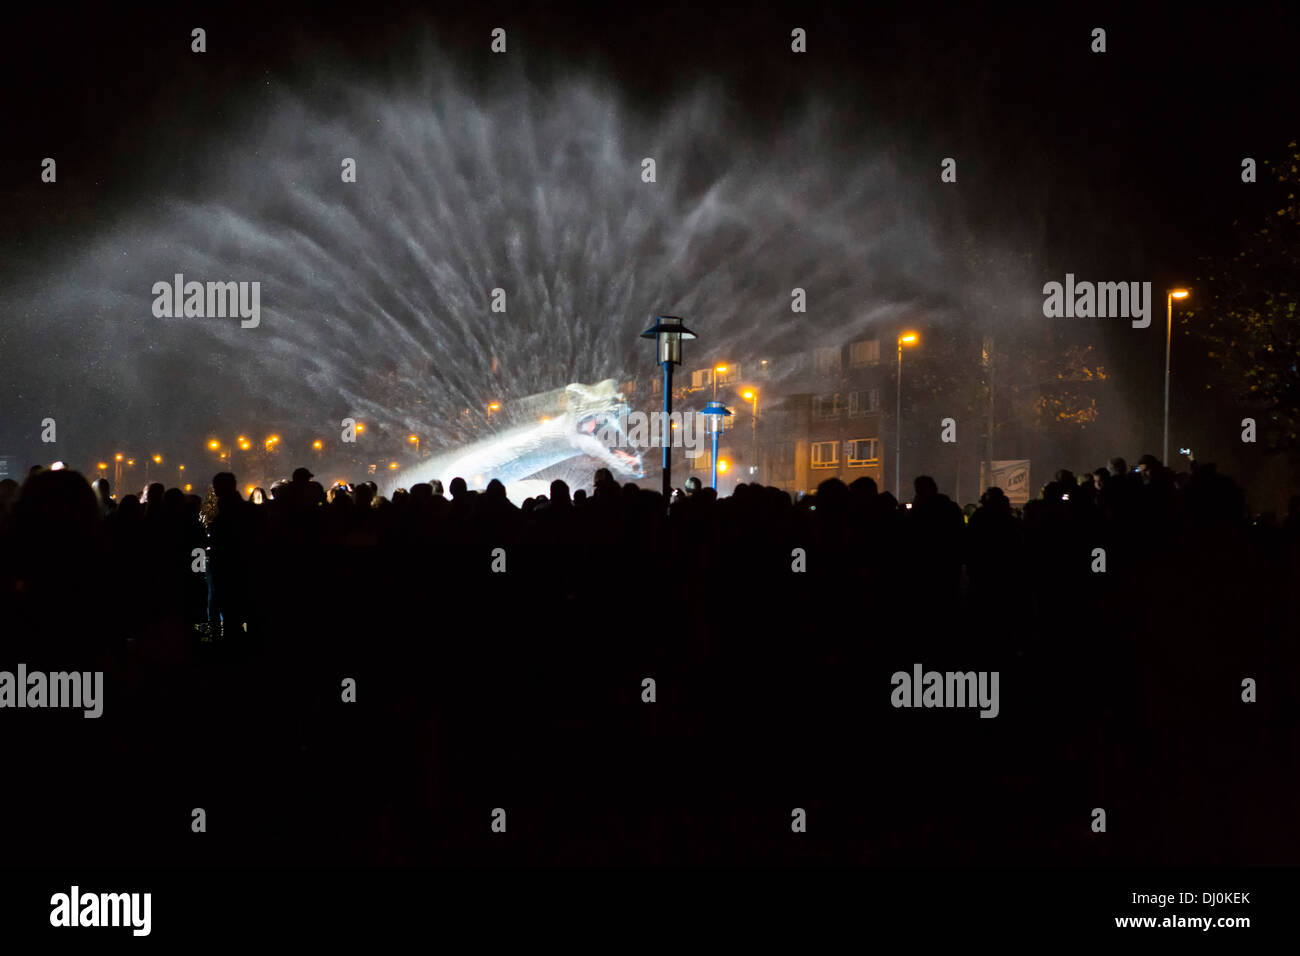 Monster attack with huge splash of water at audience with smart phones and cell phones at Glow light festival in Eindhoven - Stock Image